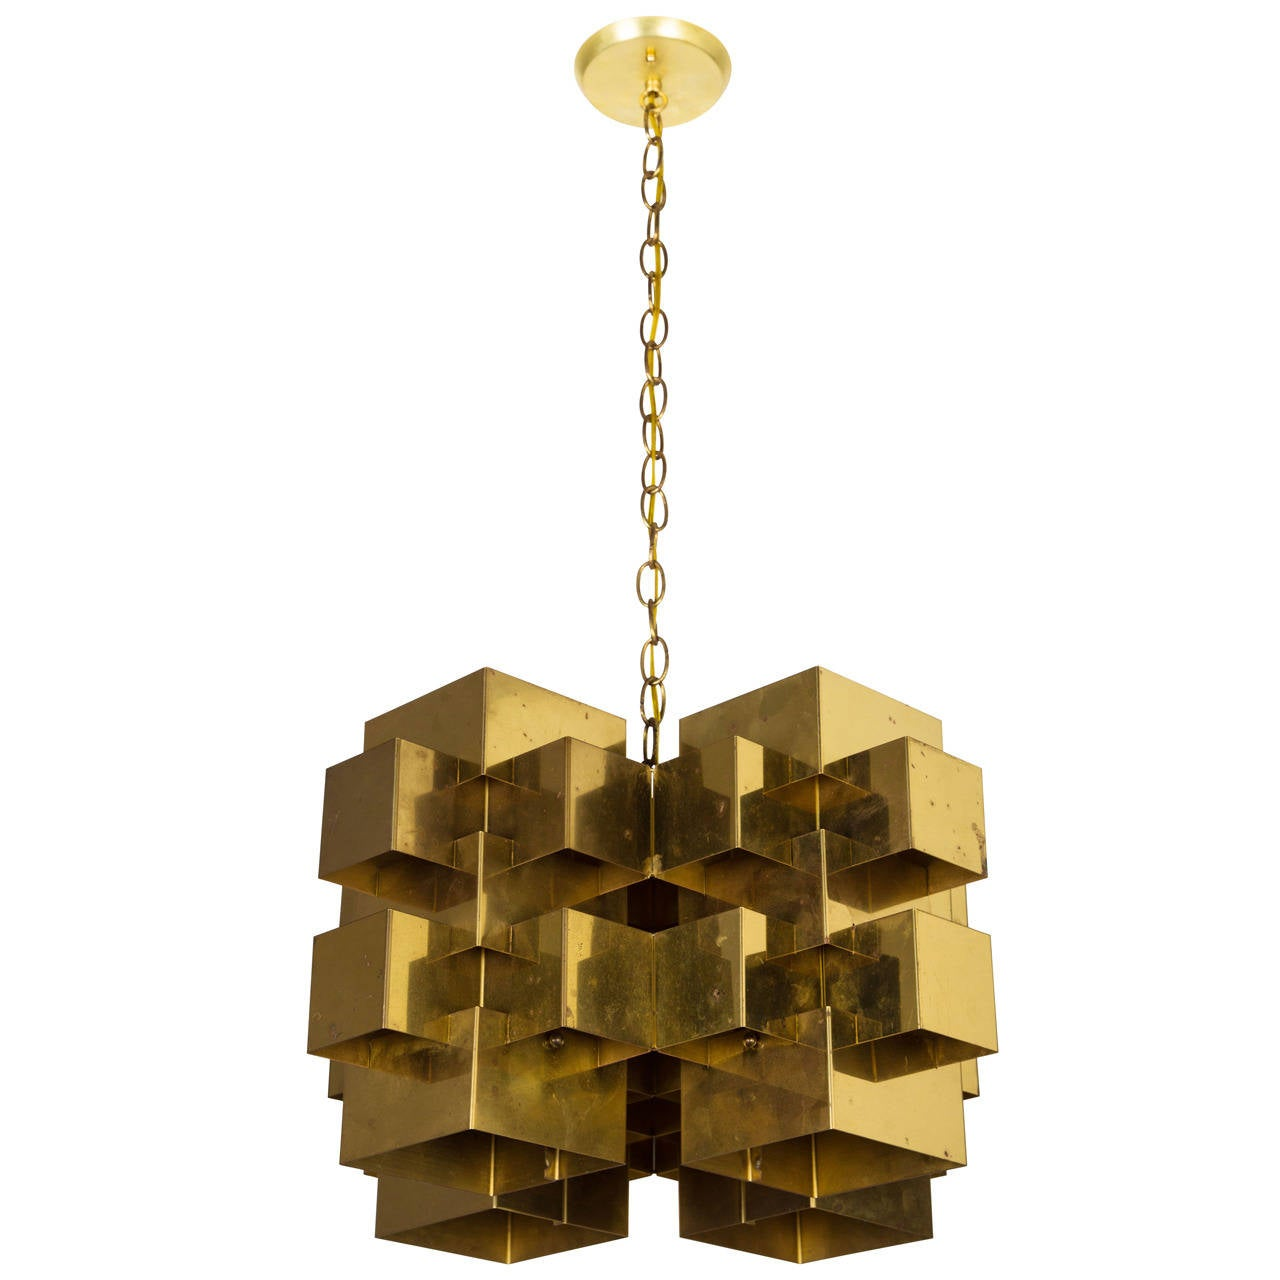 The most incredible pendant lights The most incredible pendant lights The most incredible pendant lights 1374852 l